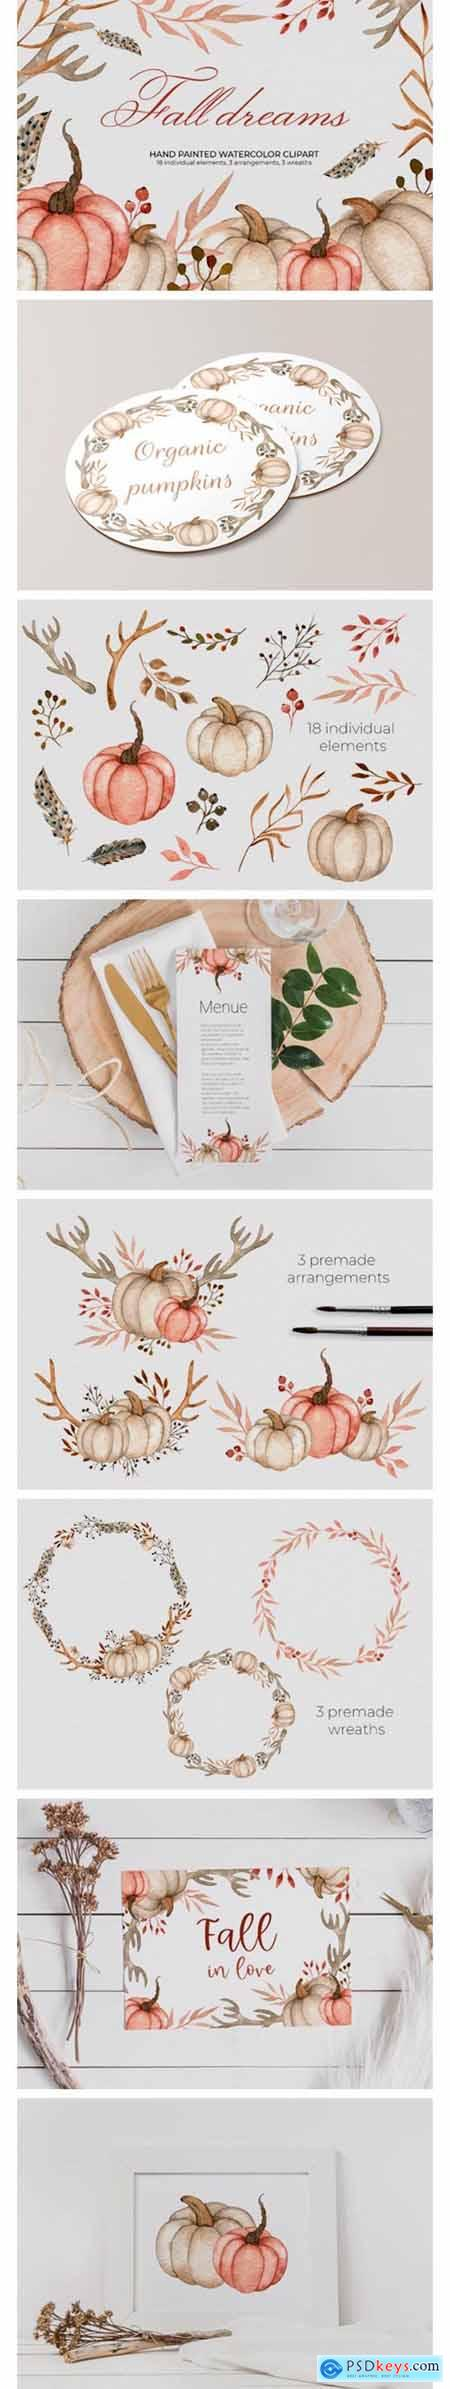 Watercolor Pumpkins, Antlers, Feathers 4969654